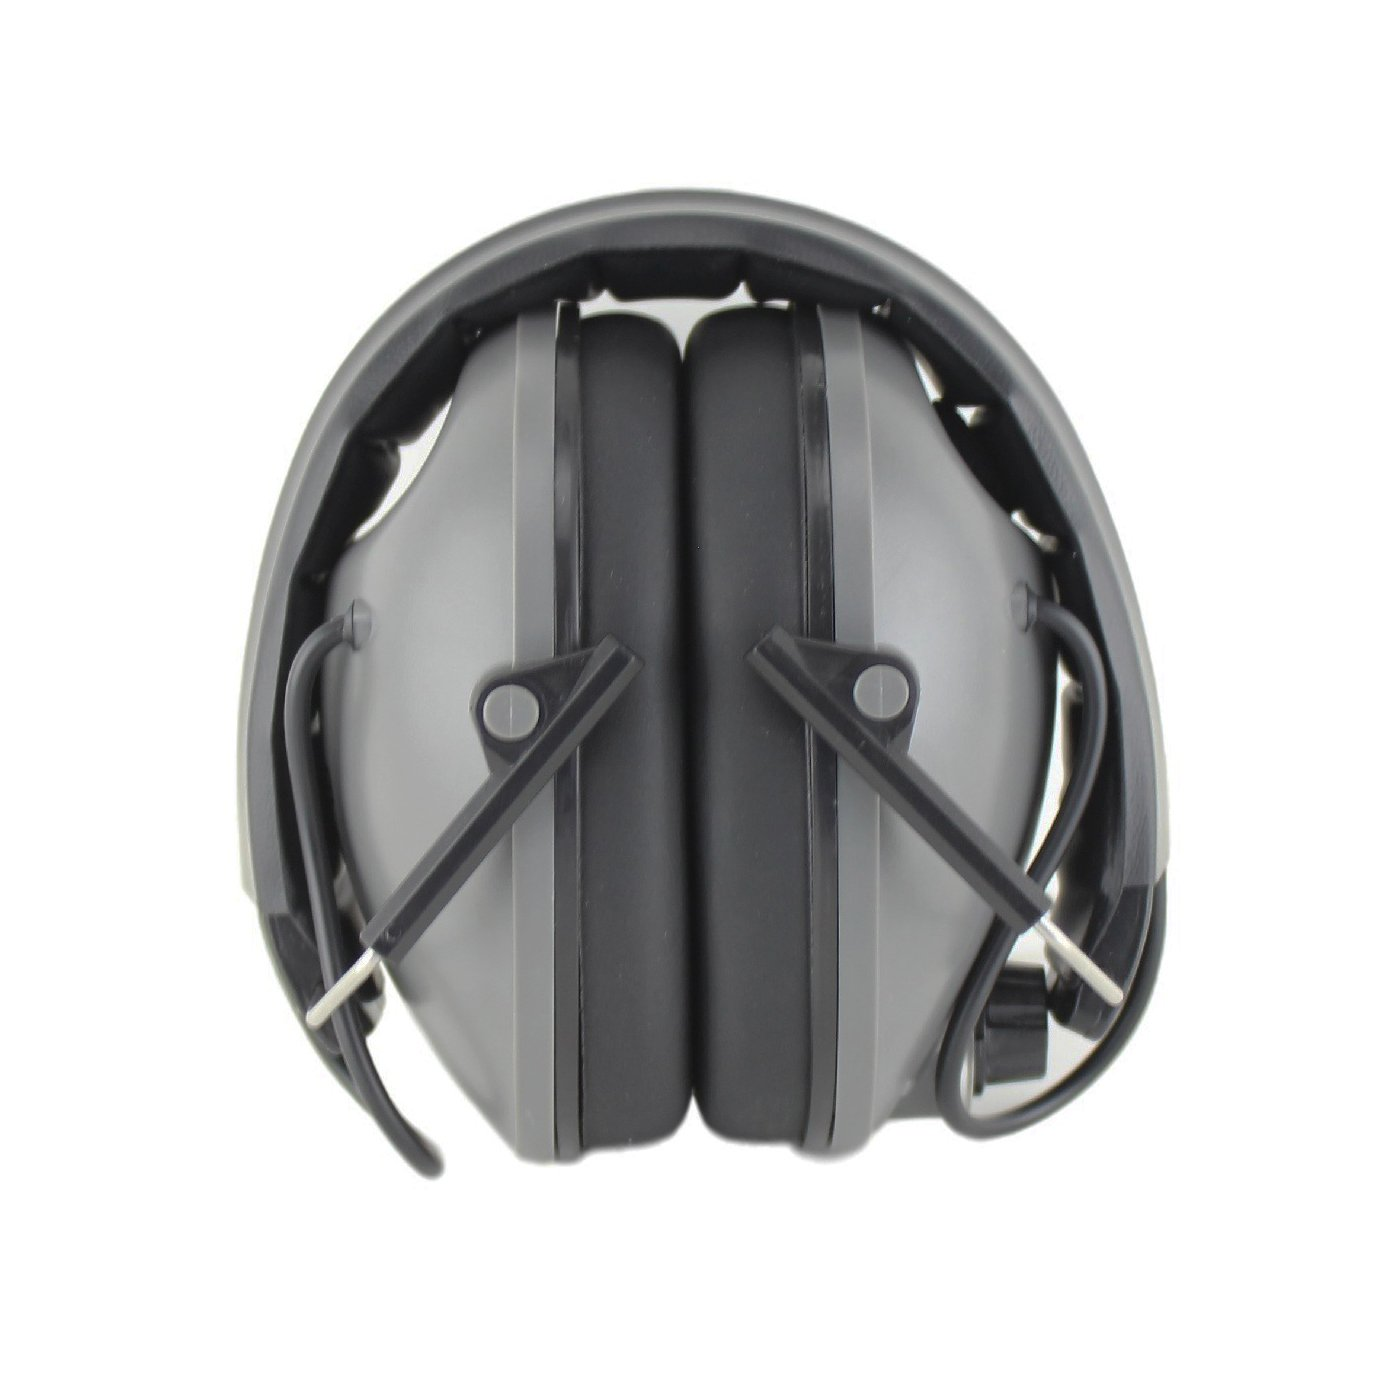 Titus E-Series - Low-Profile - Electronic Noise Cancelling Safety Earmuffs - Hearing Protection (Standard) by Titus (Image #3)